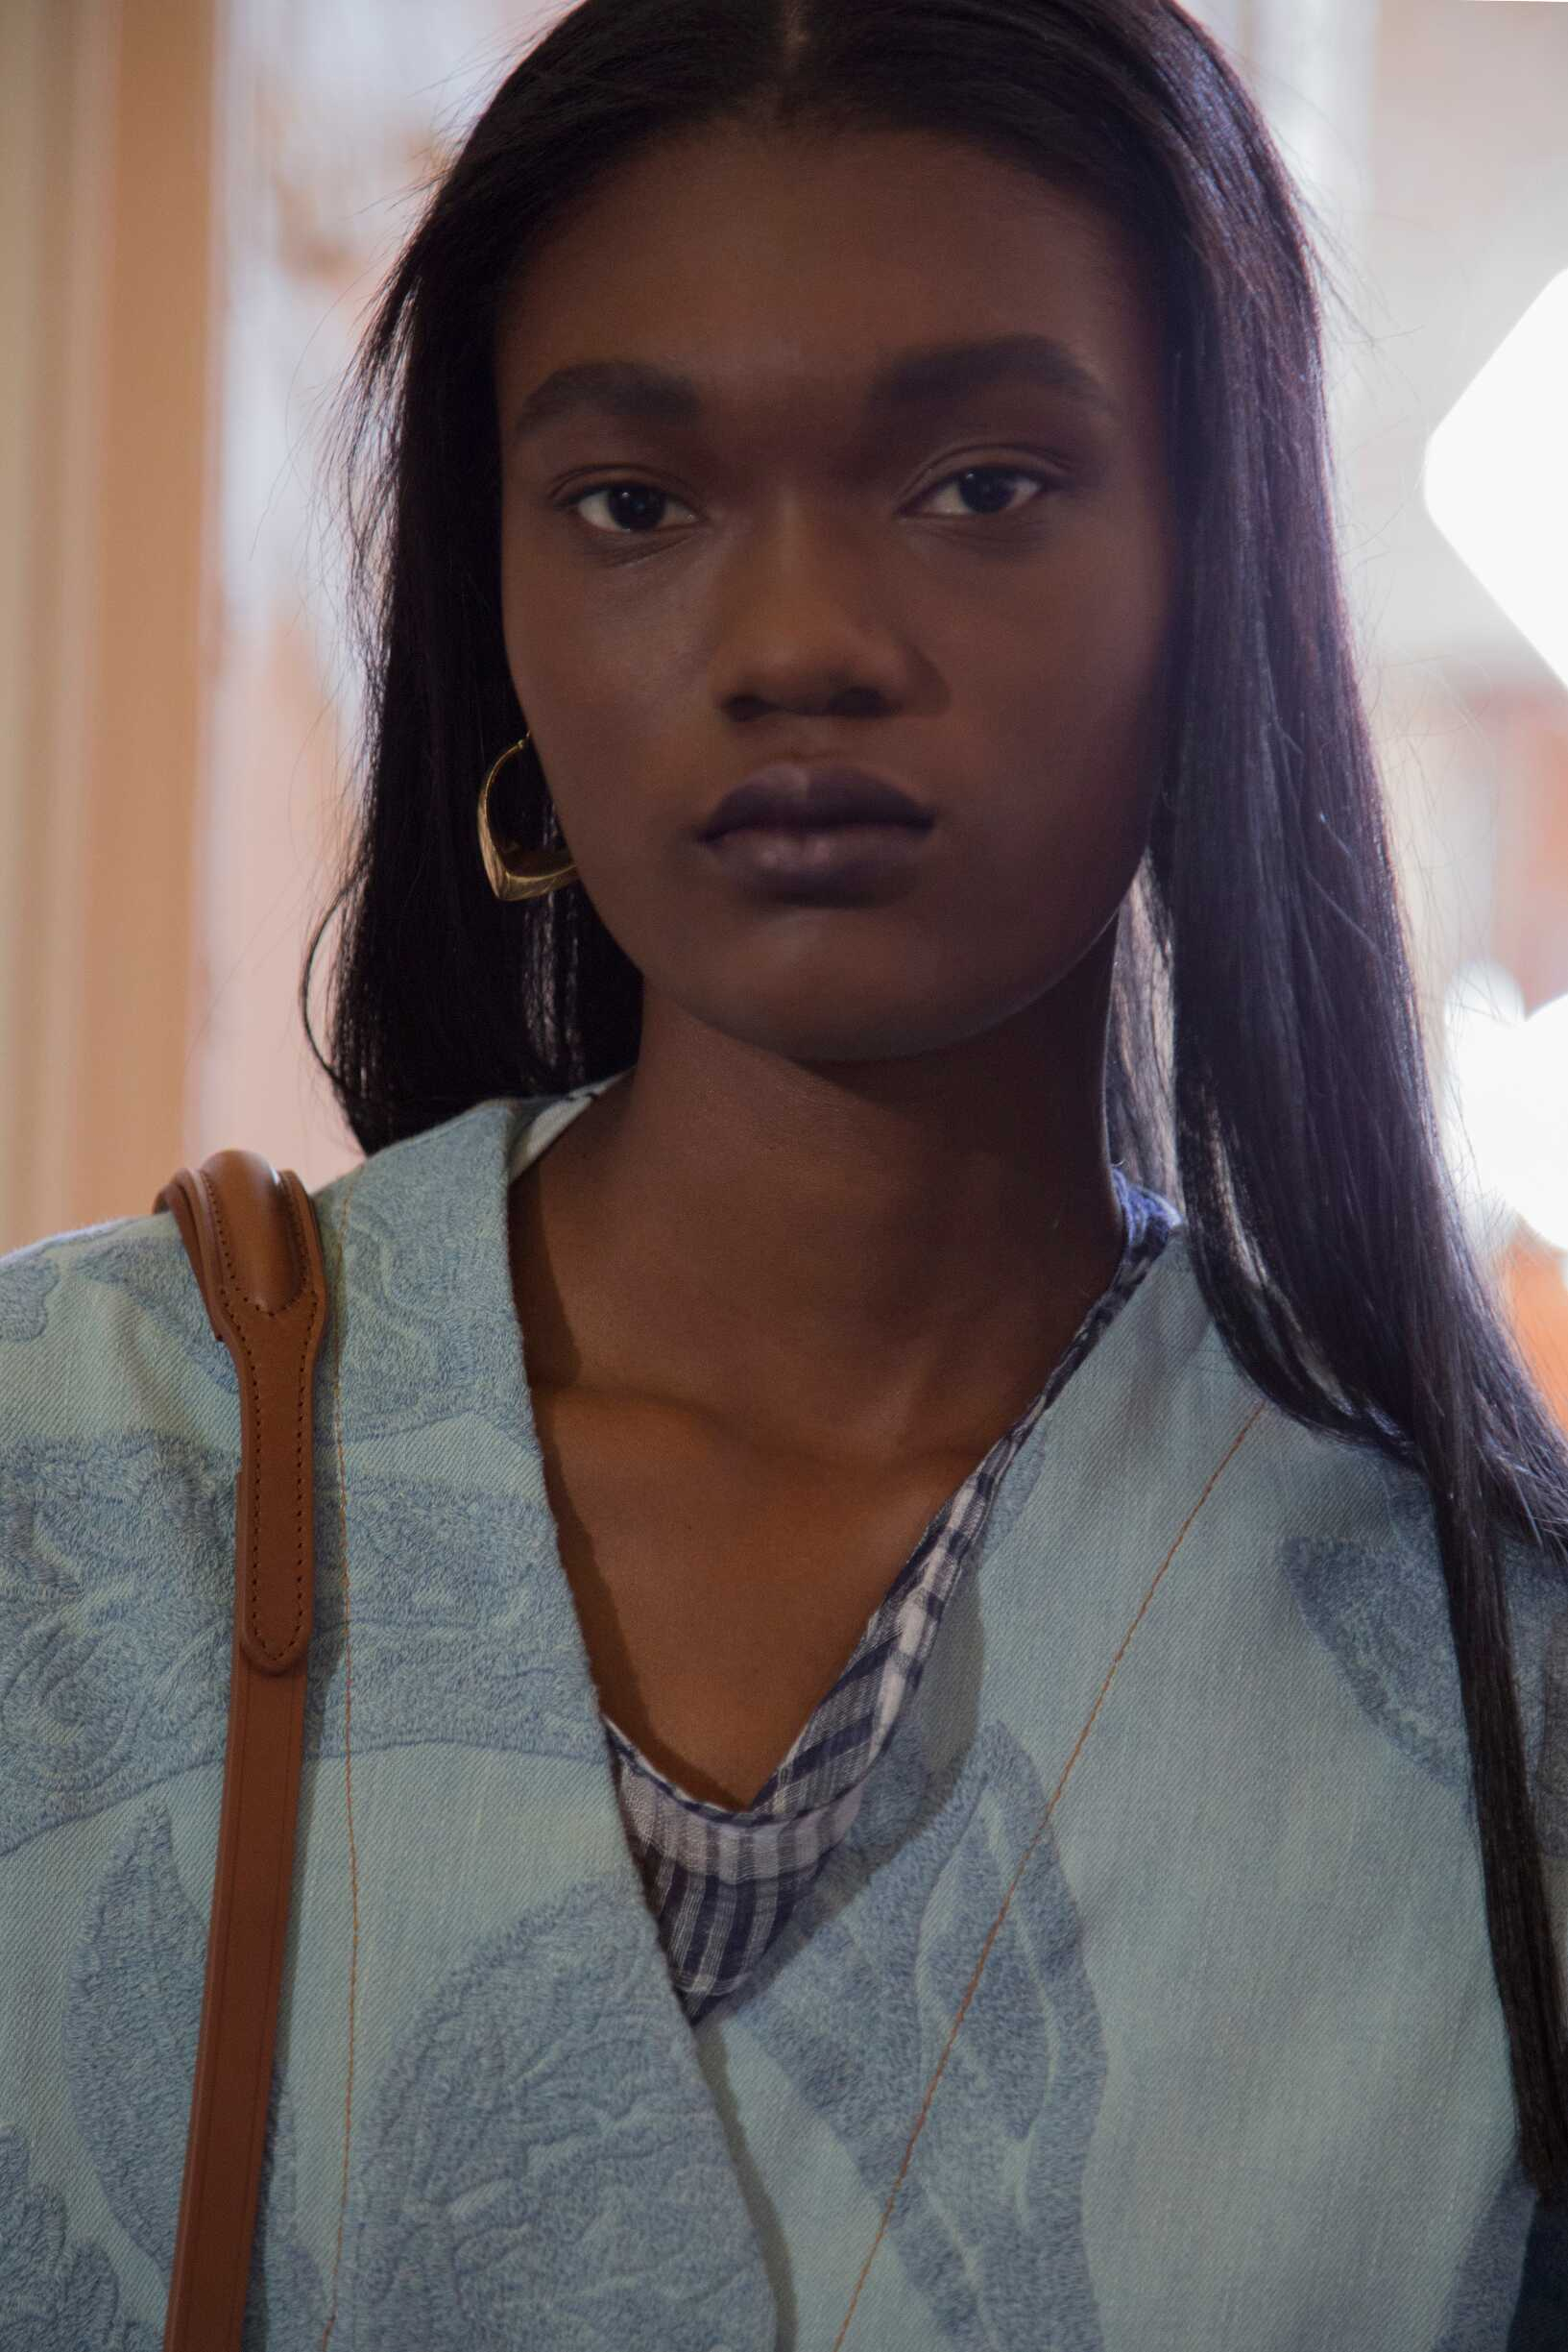 Backstage Acne Studios Fashion Show Model